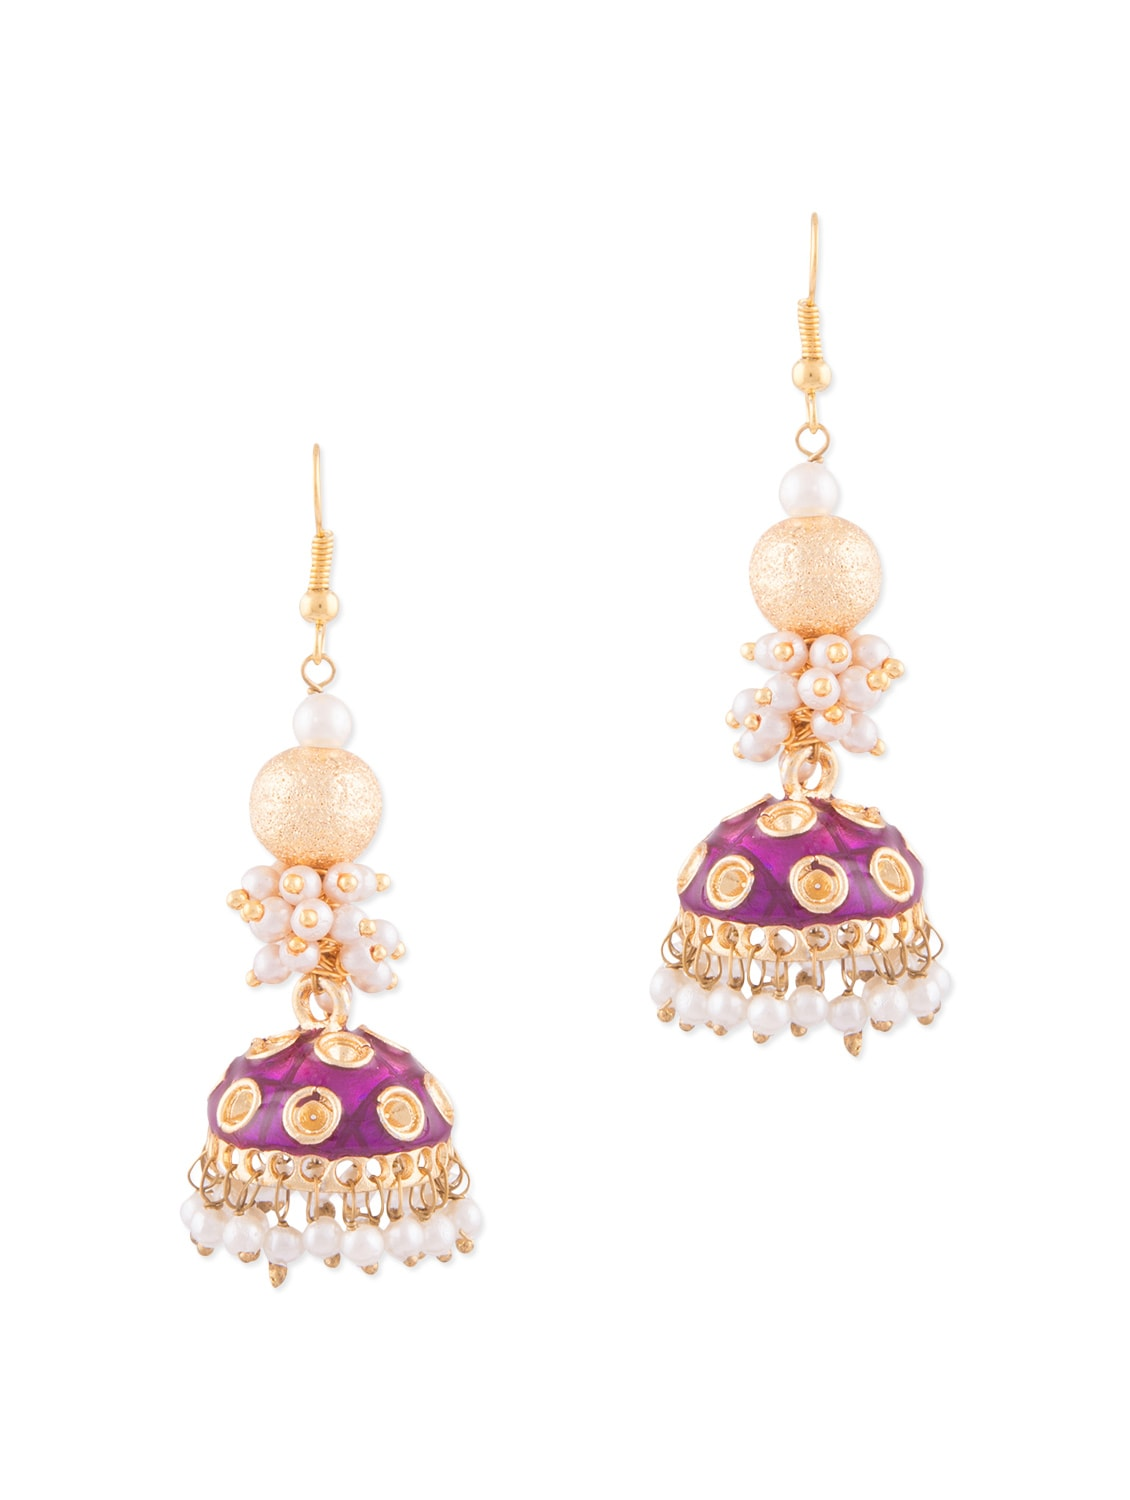 Neon White Metallic Jhumka Earrings By Kij Jewels Online Ping For In India 1292701